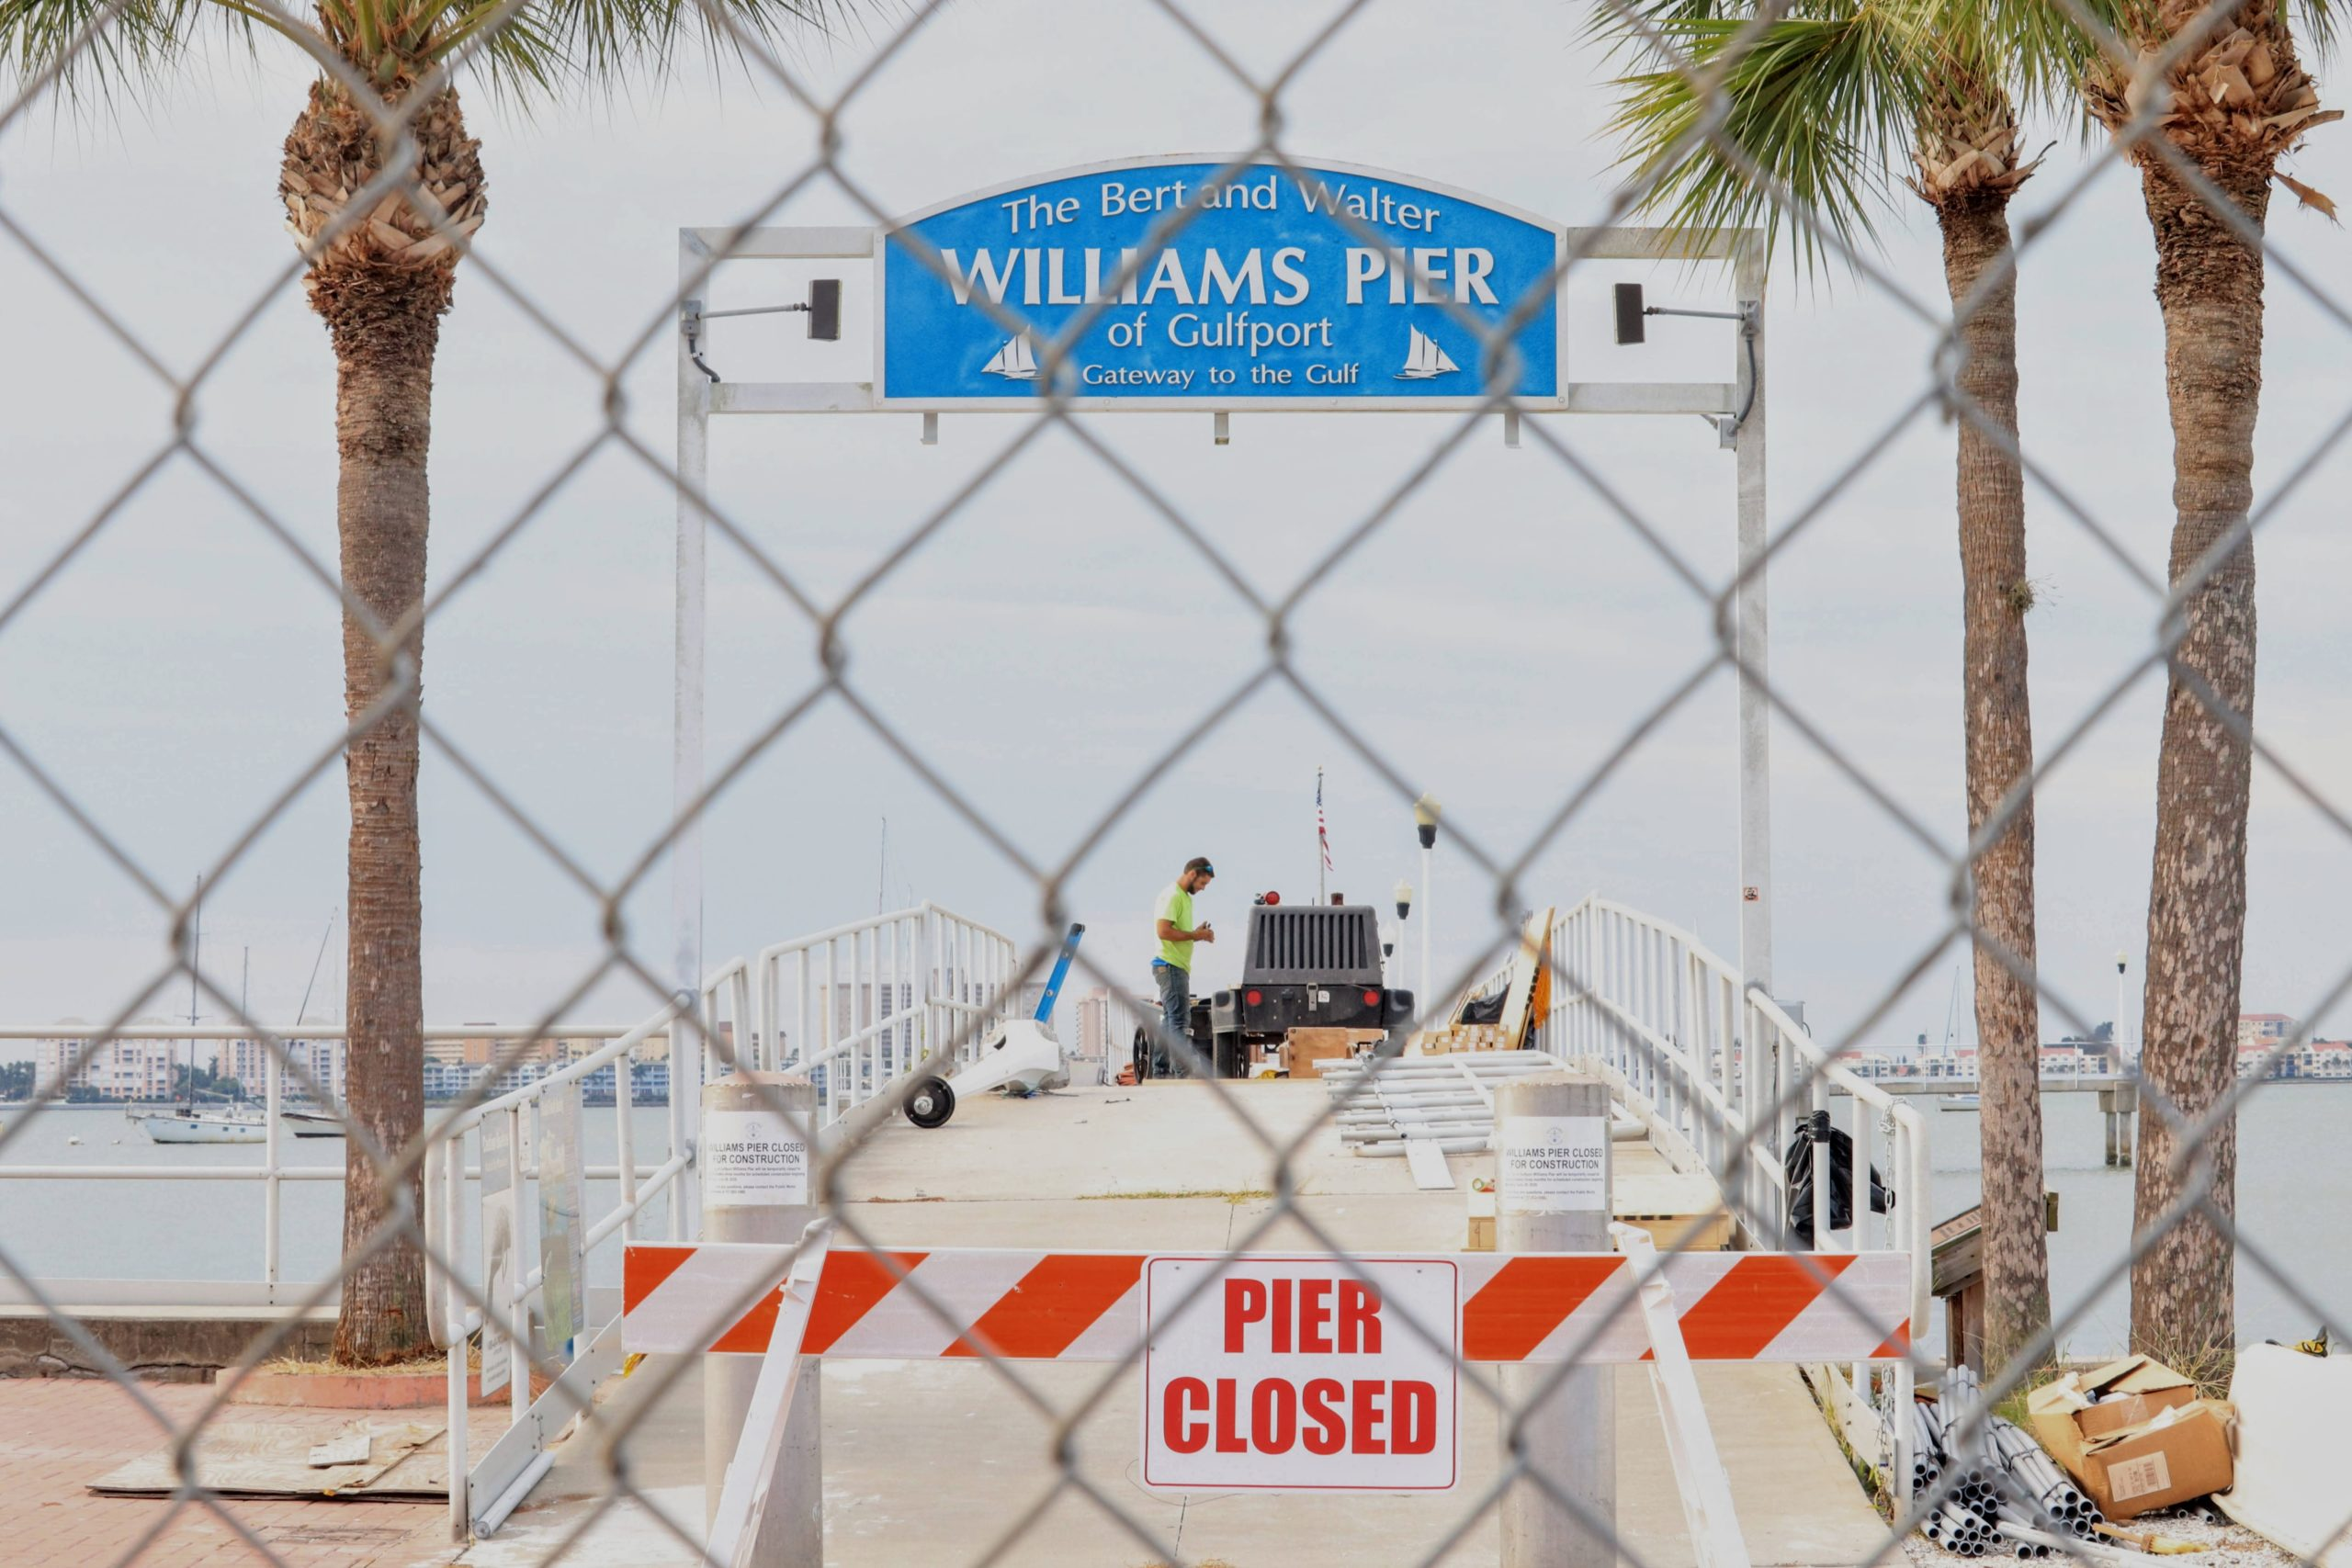 A photo of a pier through chain link fence with a sign Bert and Walter Williams Pier and another sign that reads Pier Closed